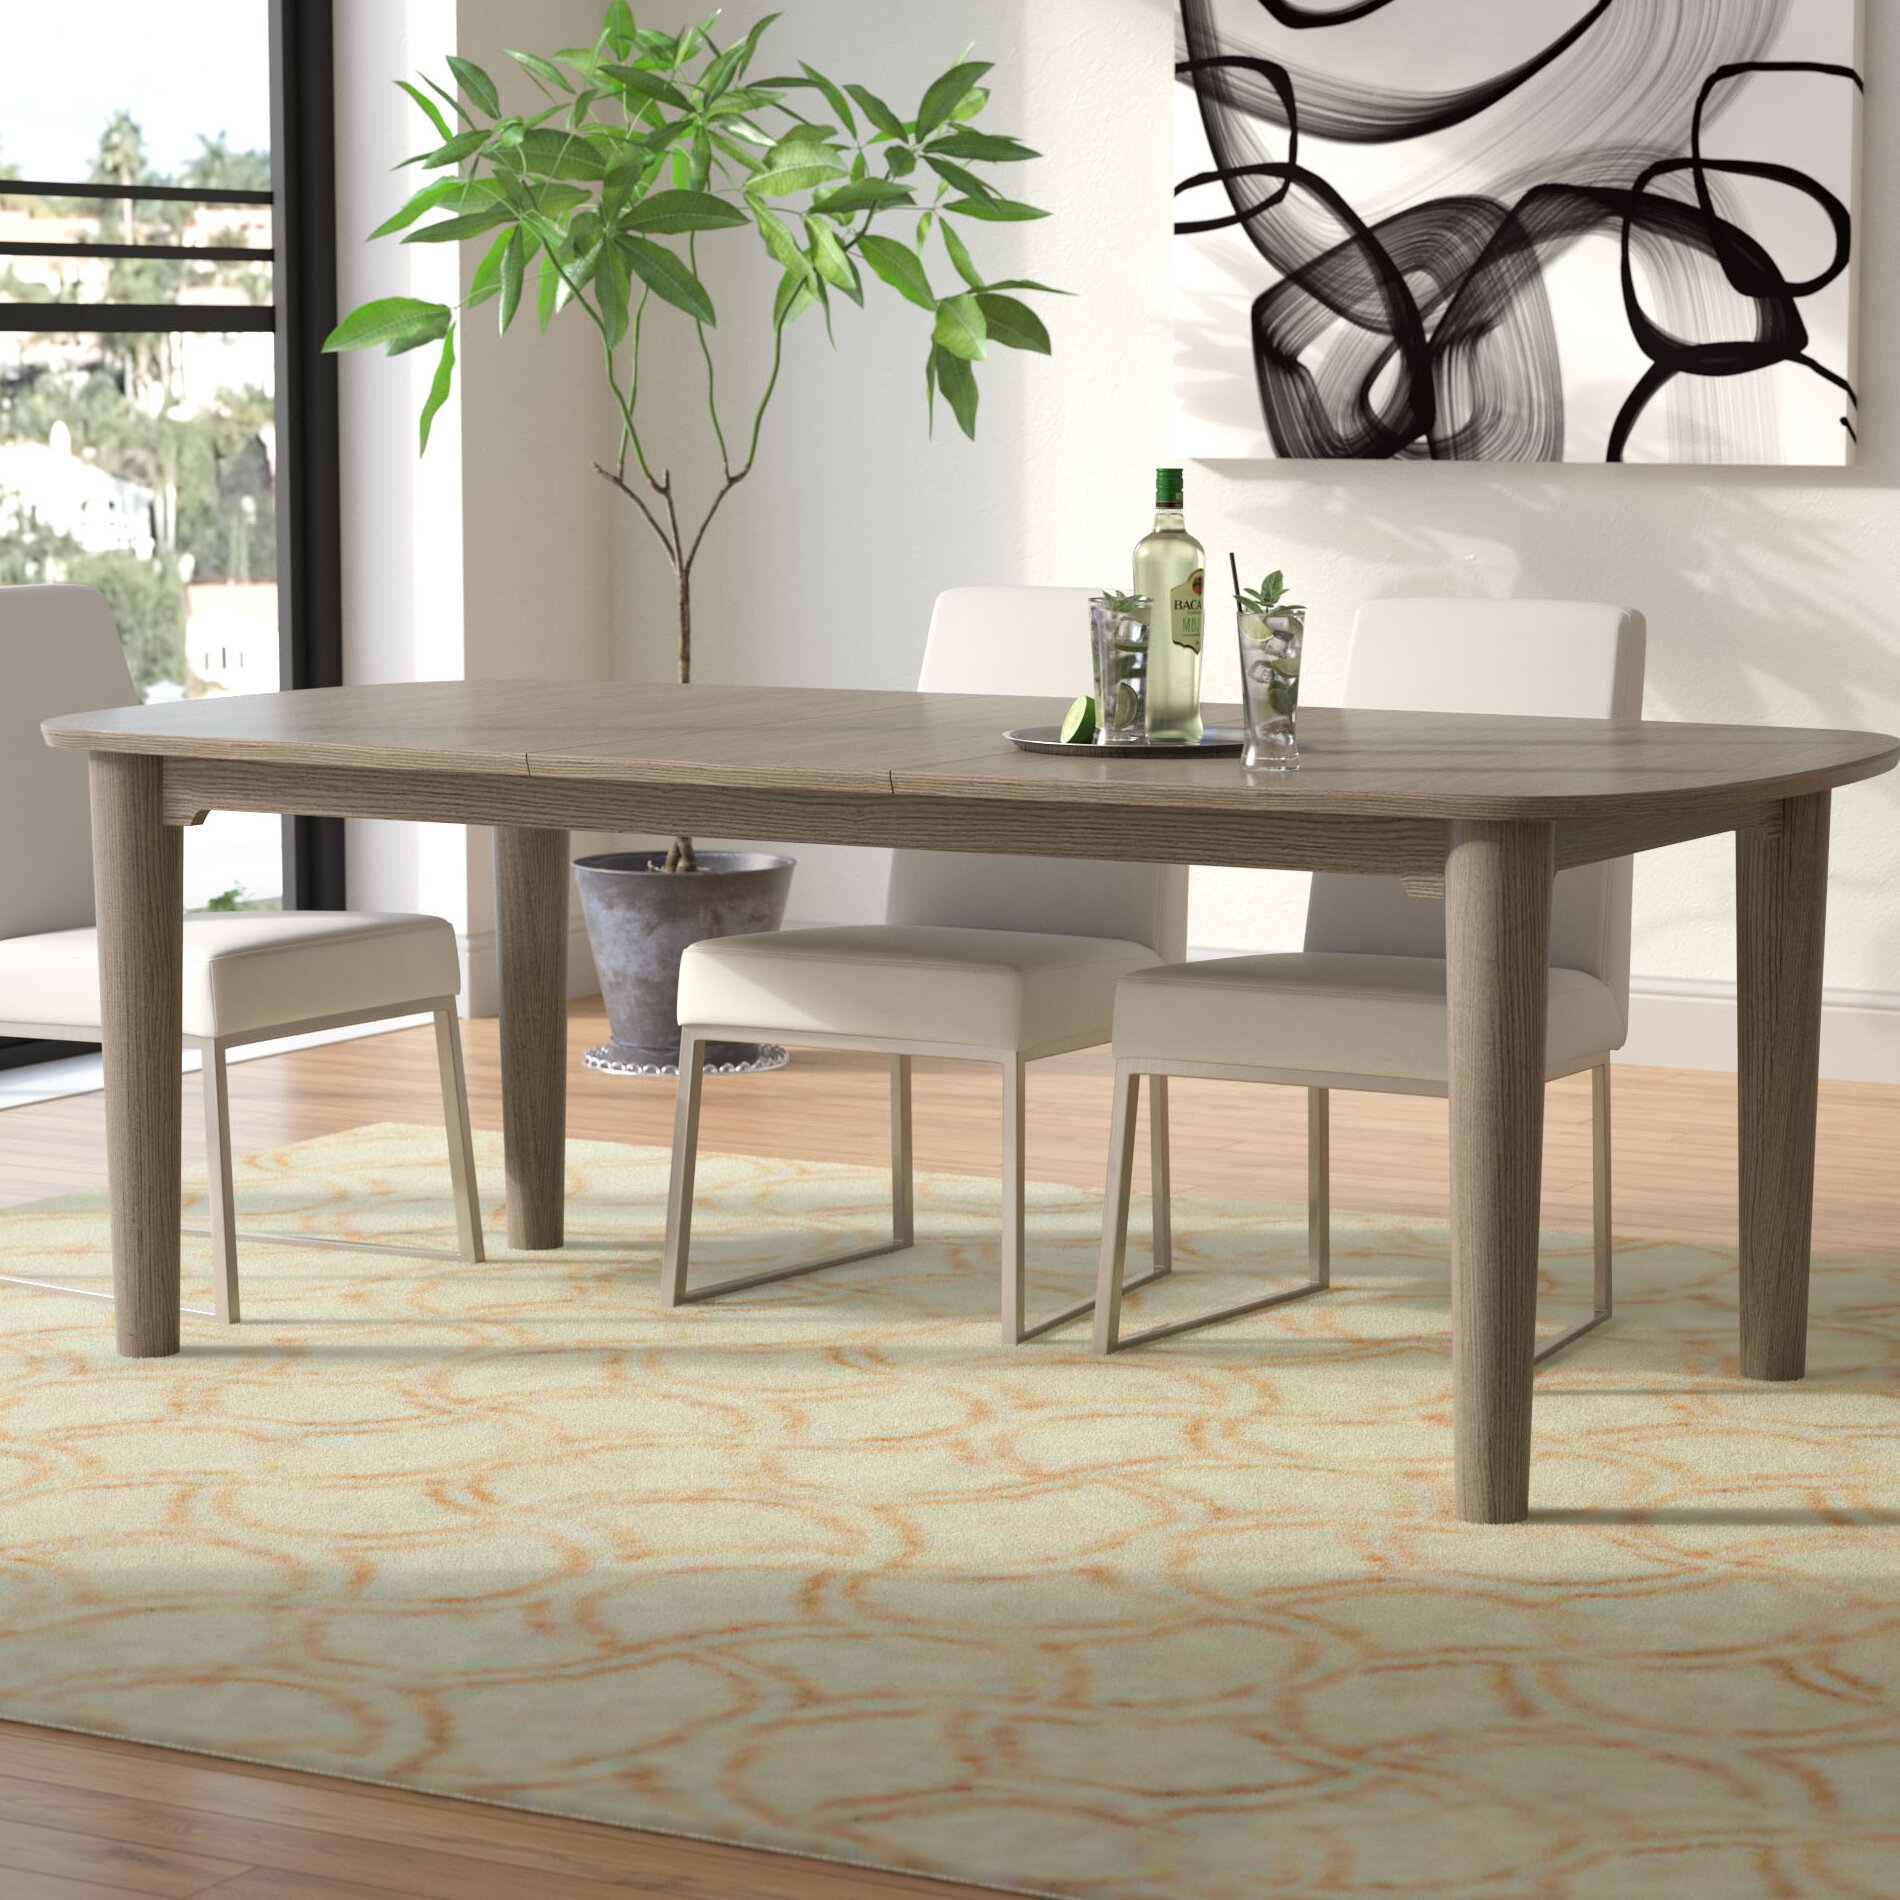 Extendable Dining Table With Bench | Interior Design Ideas Inside Most Current Seadrift Toscana Extending Dining Tables (View 24 of 25)